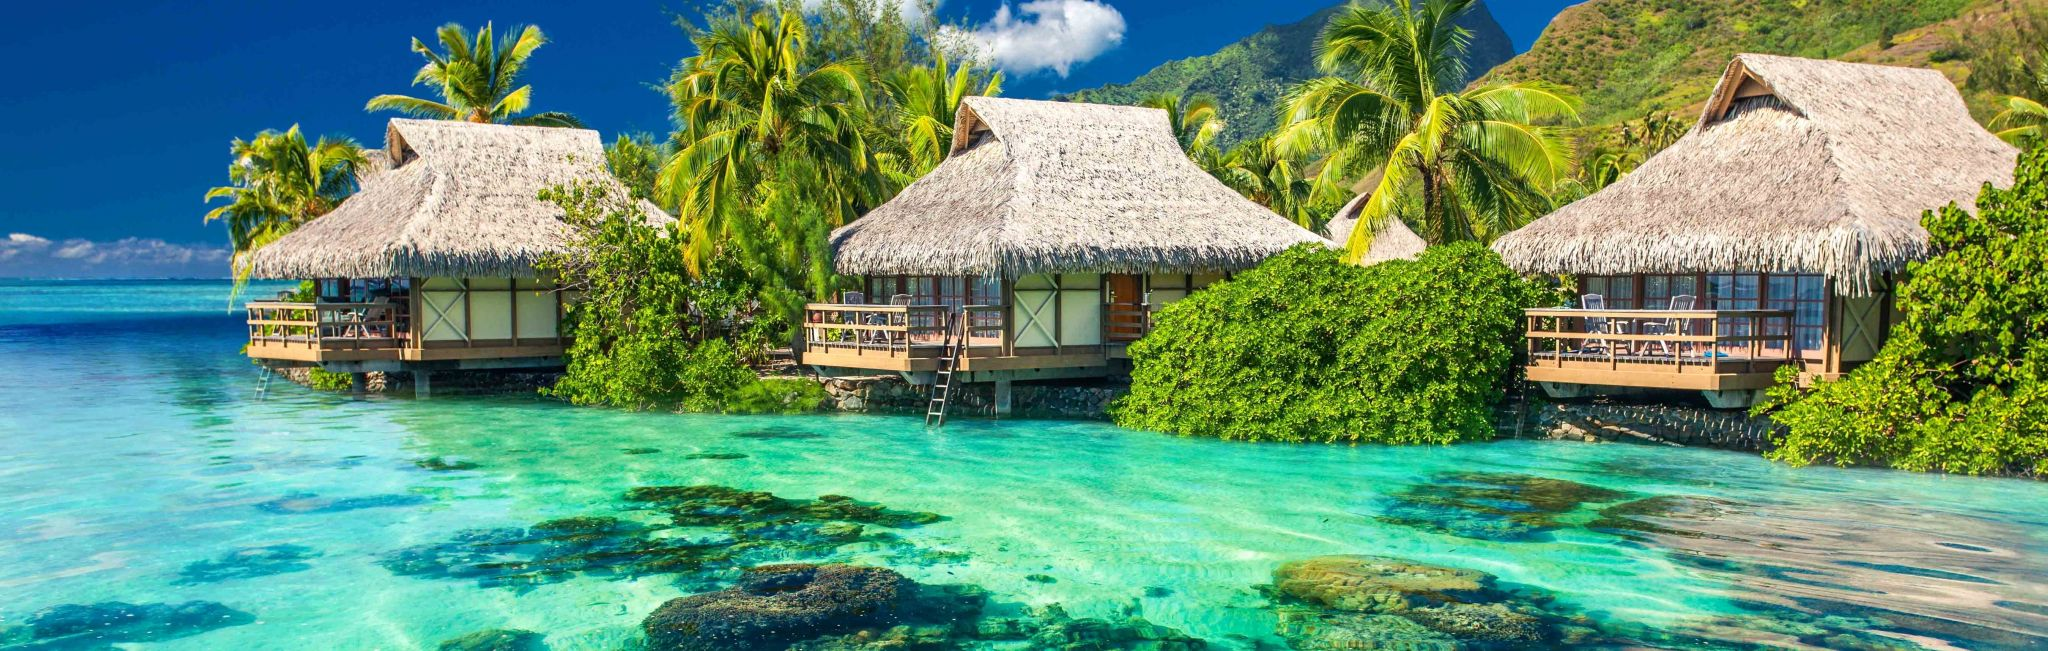 Fiji Vacations 2018 2019 Best Fiji Vacation Packages